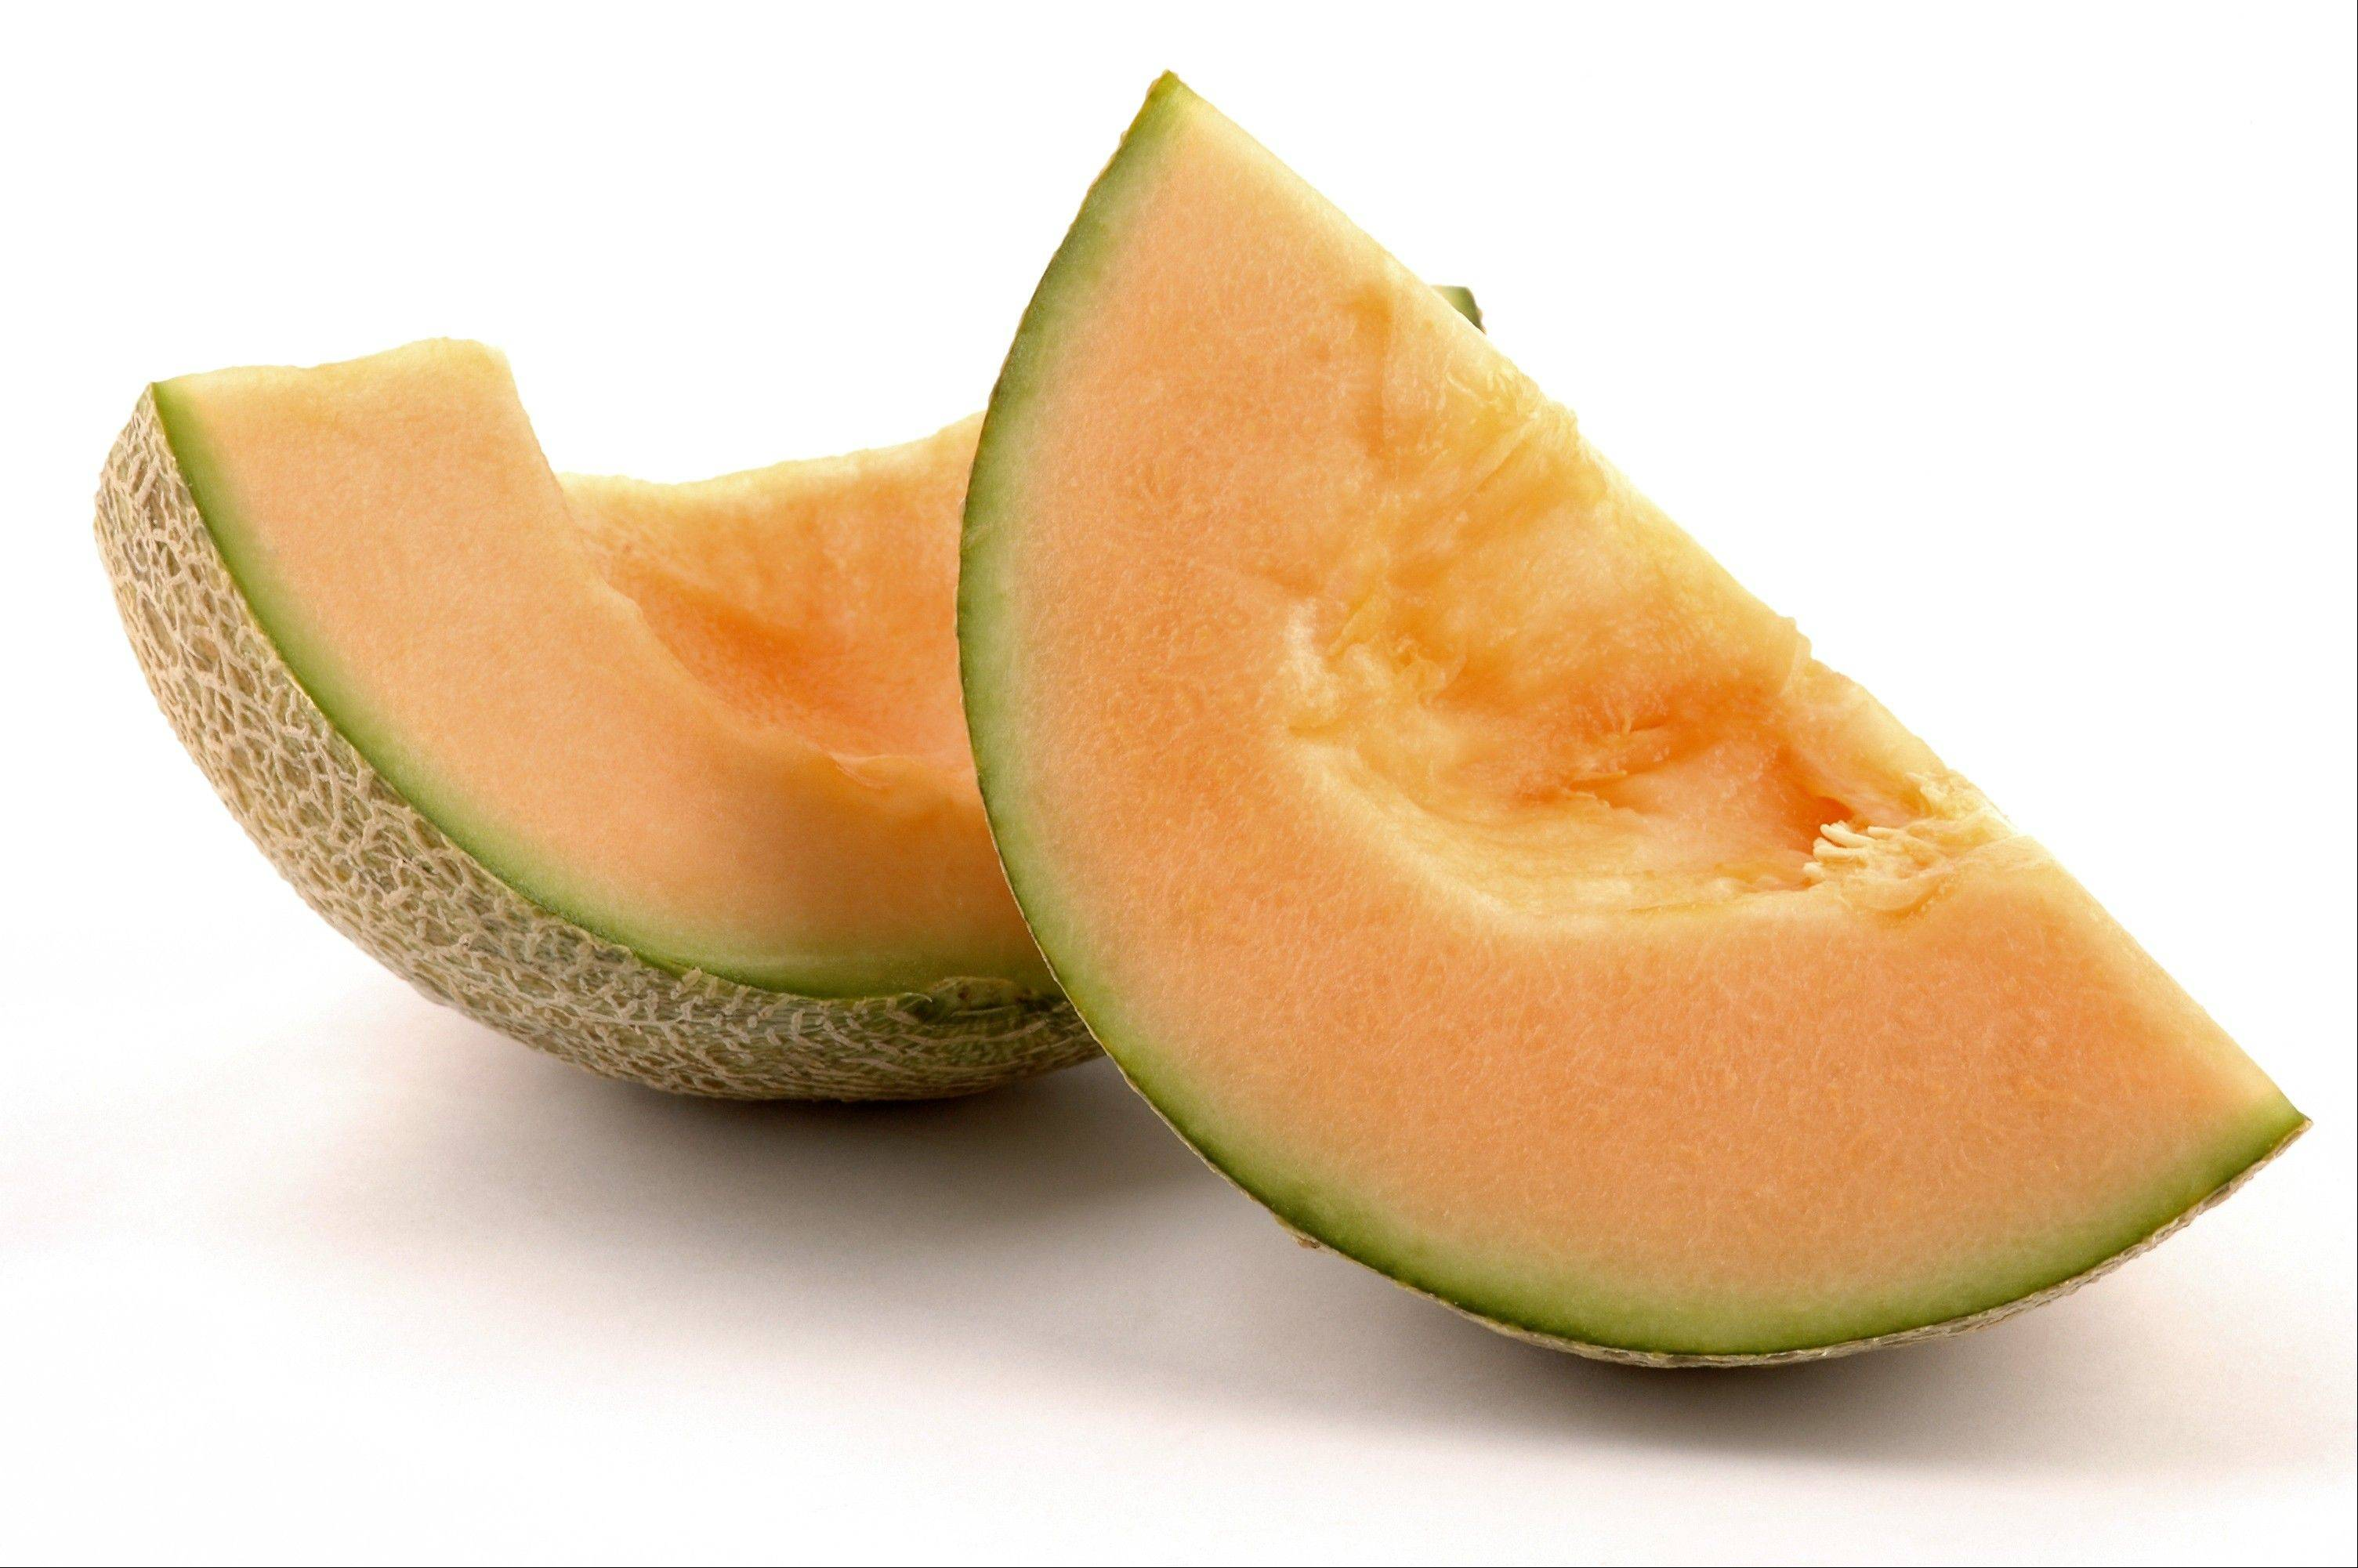 Cantaloupe is a good source of vitamin C as well as betacarotene.